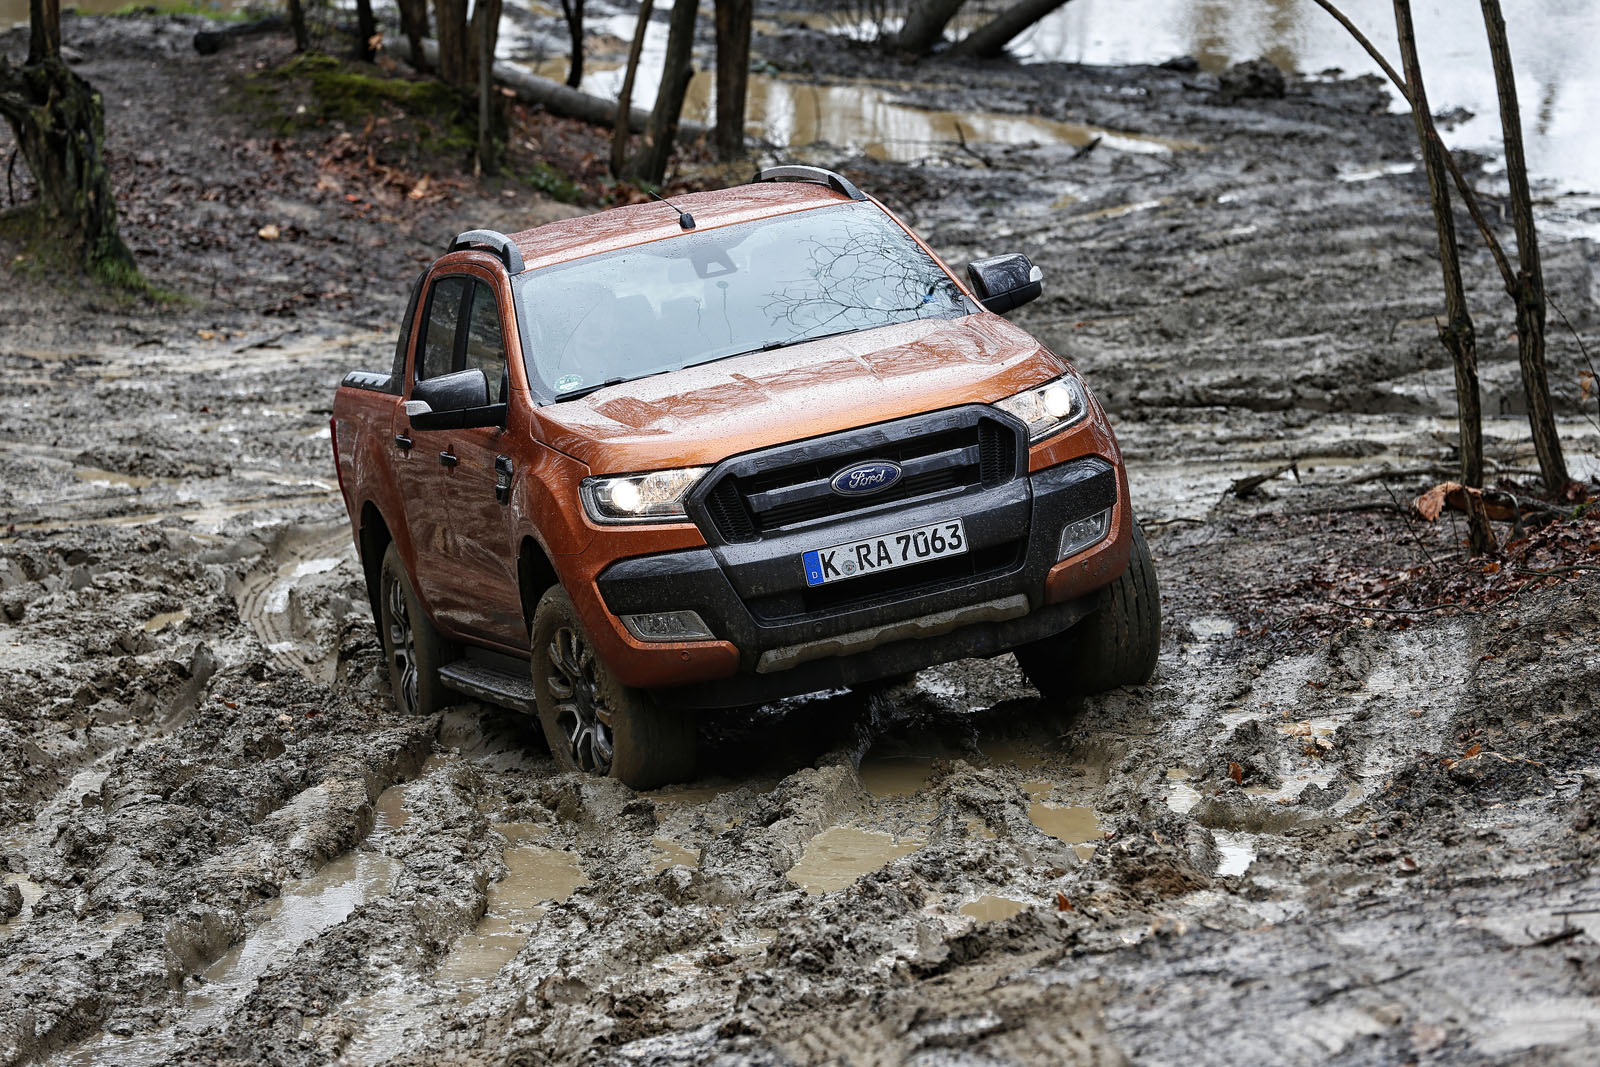 essai du ford ranger restyl le plus europ en des pick ups french driver. Black Bedroom Furniture Sets. Home Design Ideas